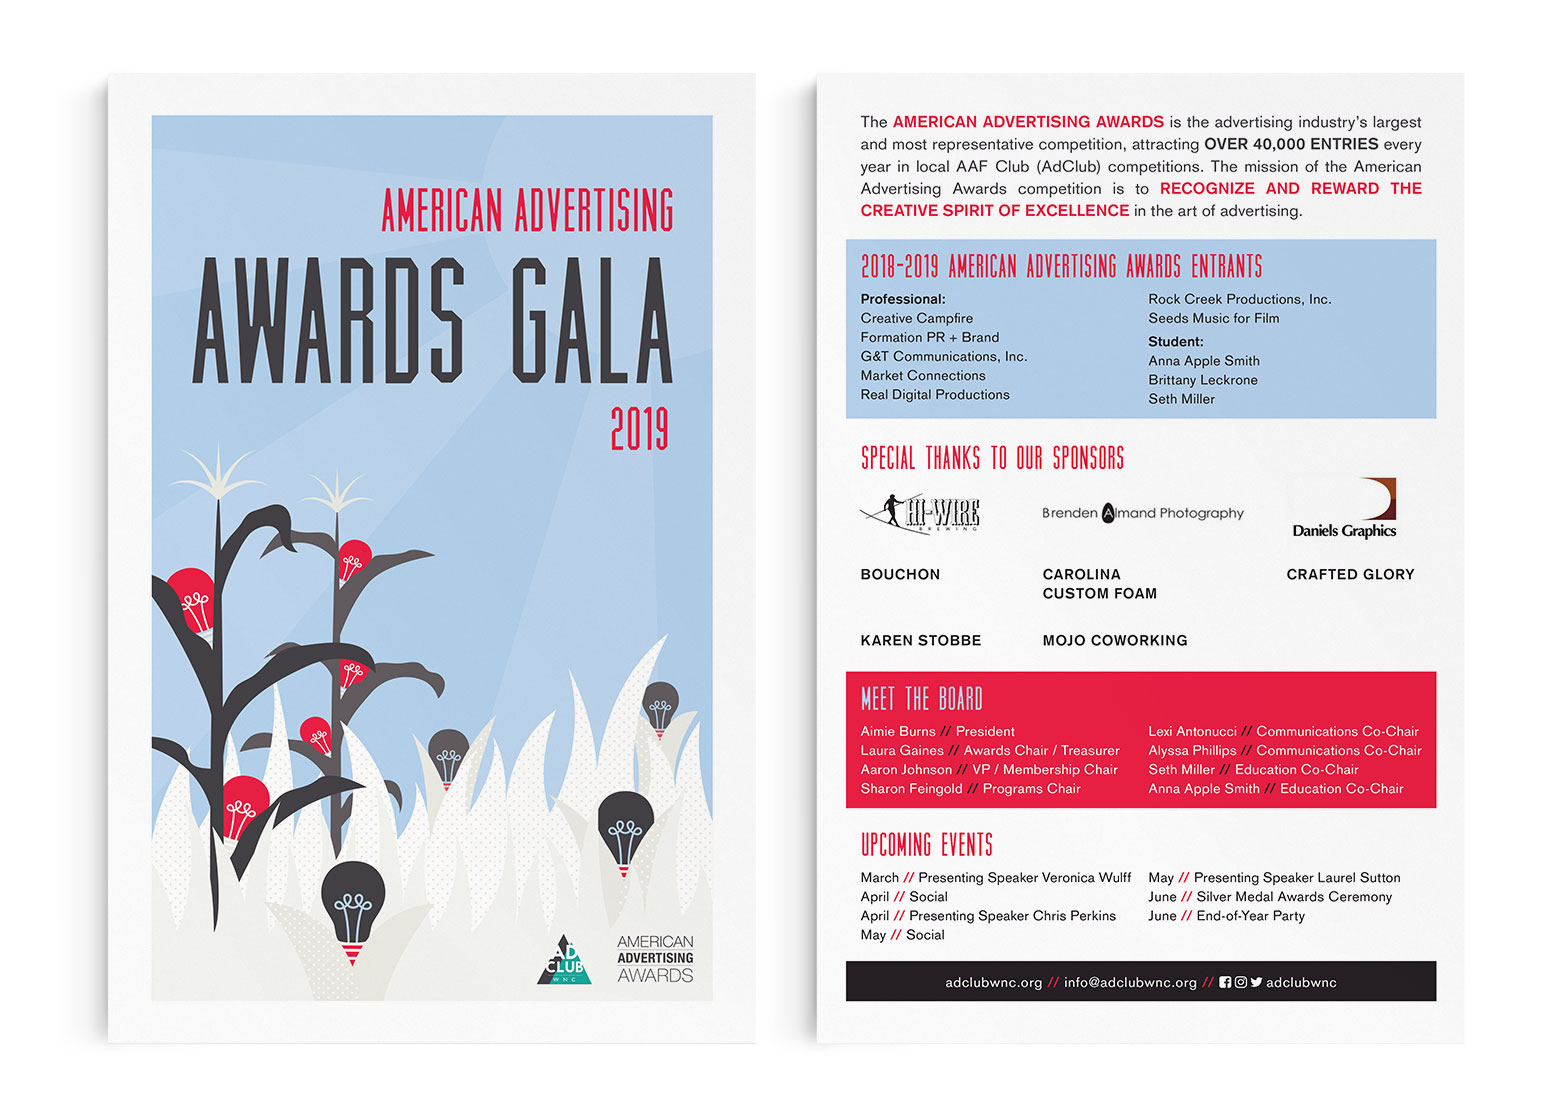 2019 Awards Gala program